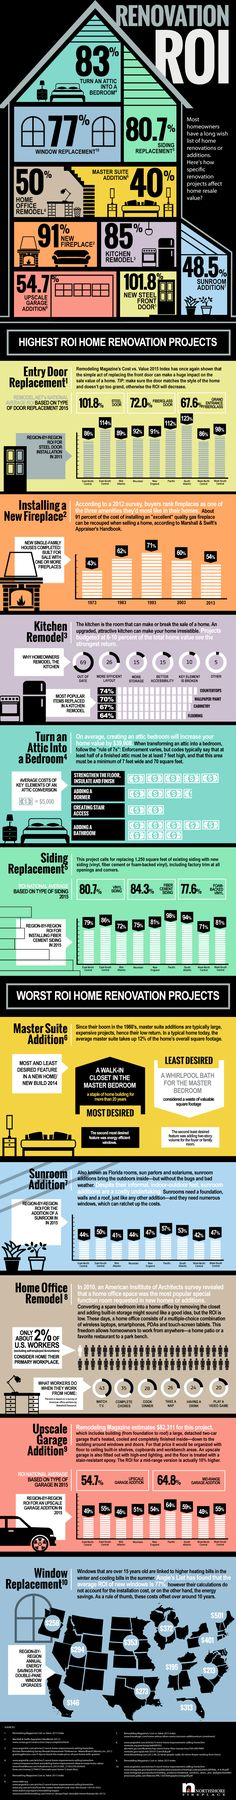 Looking To #Remodel Your Home This Year? These Time-Tested Projects See The Highest Returns On Investment. -RISMedia #ROI #HomeImprovement